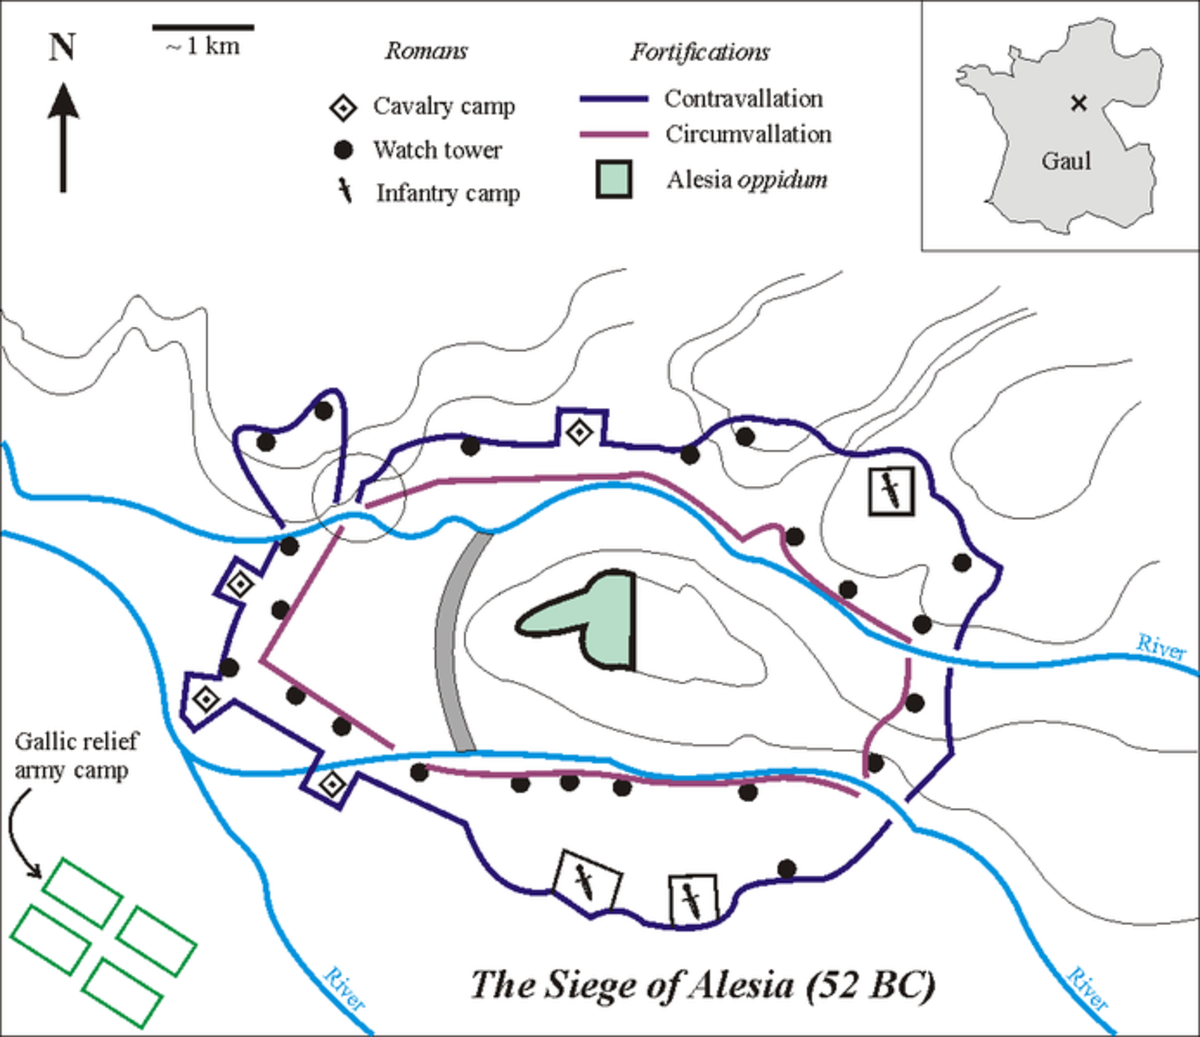 This map highlights the fortifications constructed by Julius Caesar according to archaelogical evidence.